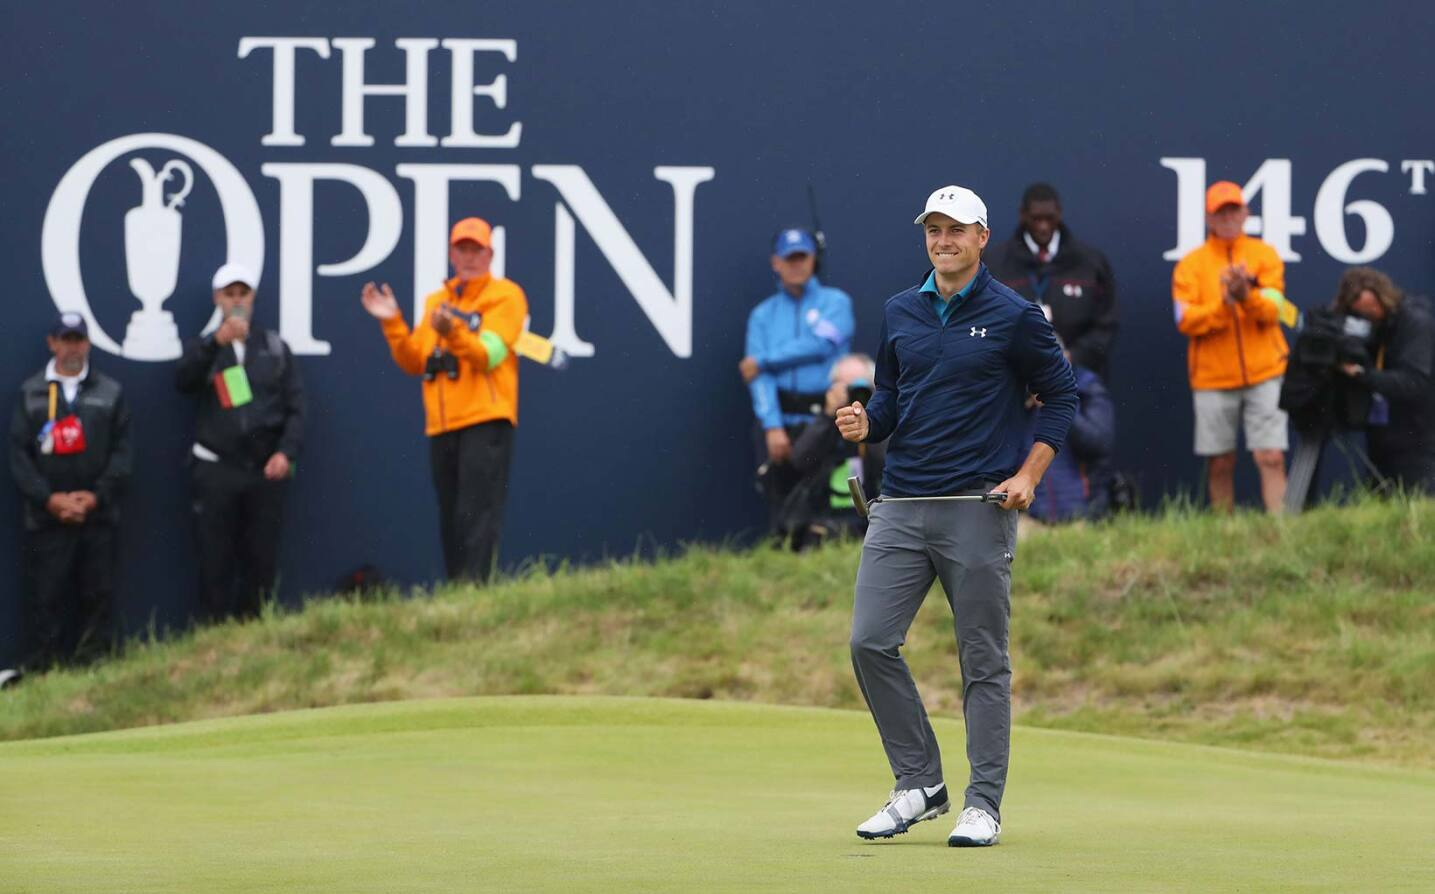 2017 Open Championship: Final Round - A Par Putt Clinches Jordan's Victory at The Open